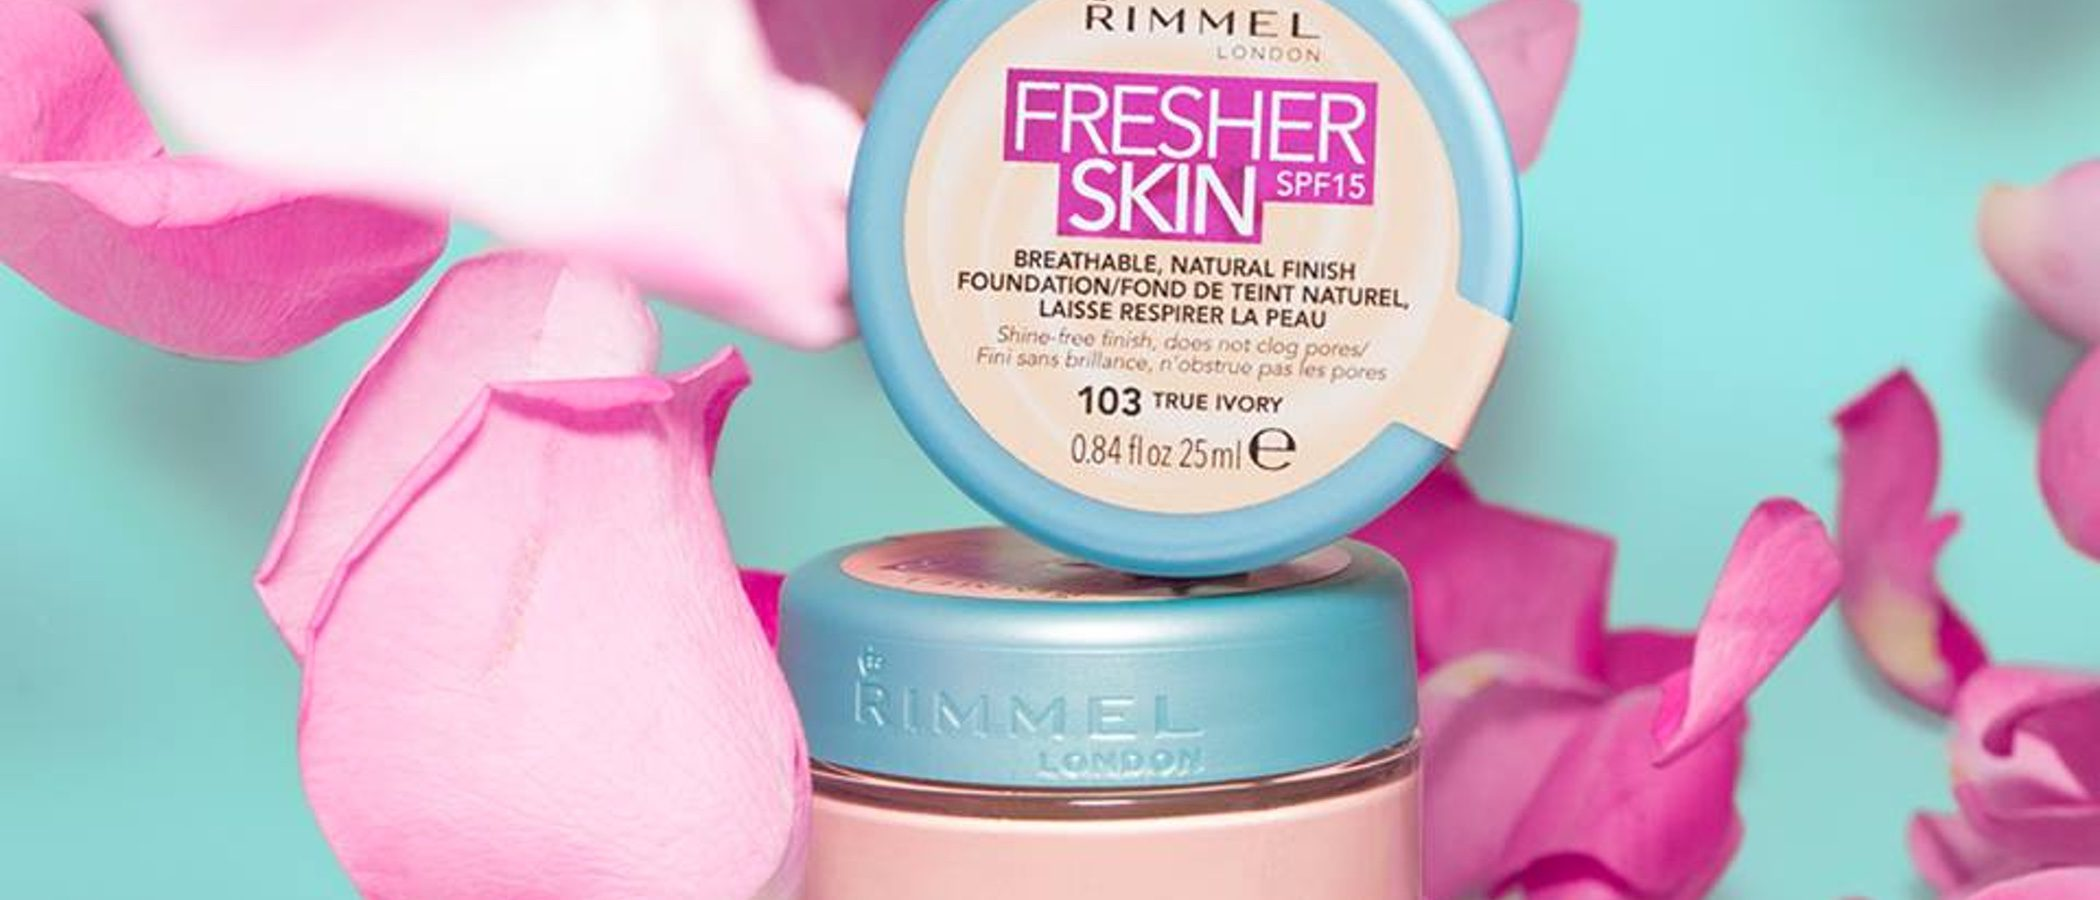 'Fresher Skin', la nueva base de maquillaje de Rimmel London para un look fresco y natural